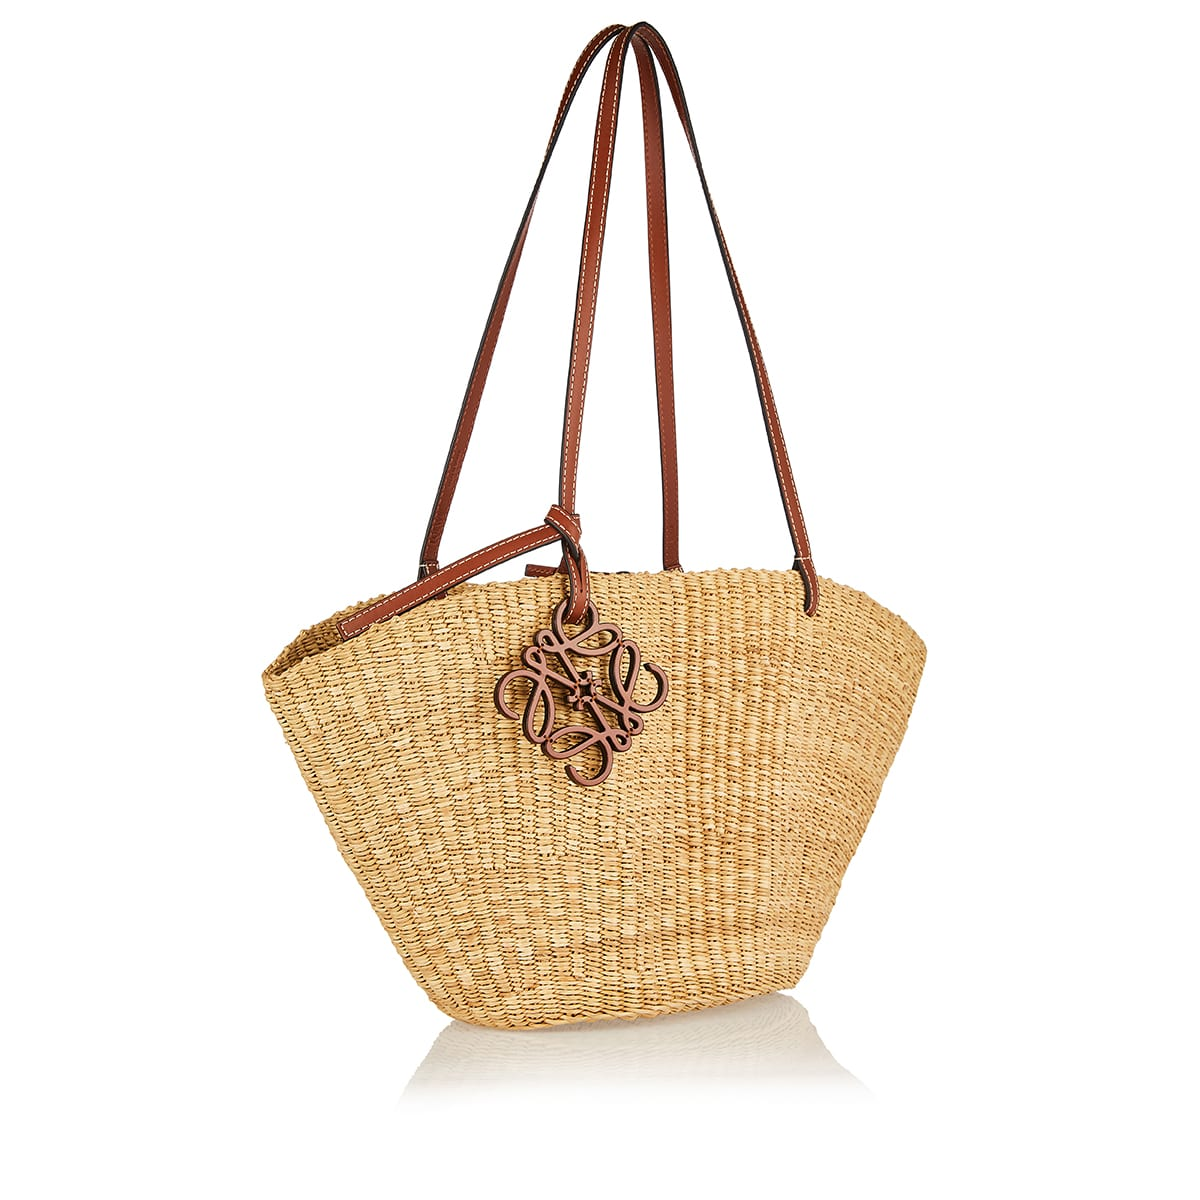 Shell small woven basket bag